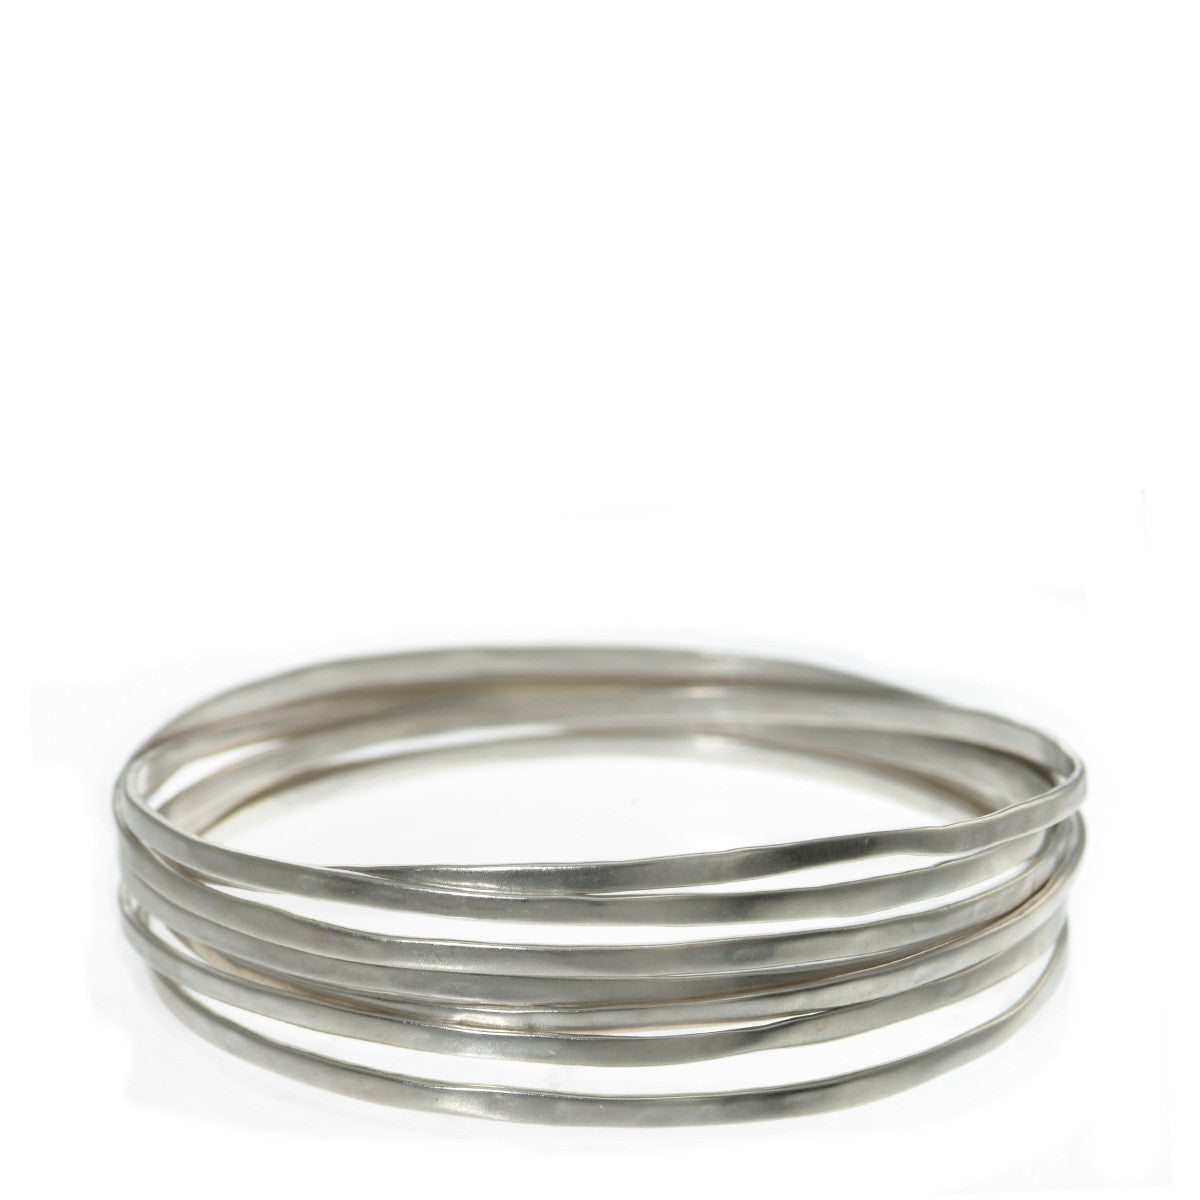 Sterling Silver Flattened Bangles (Set of 7)